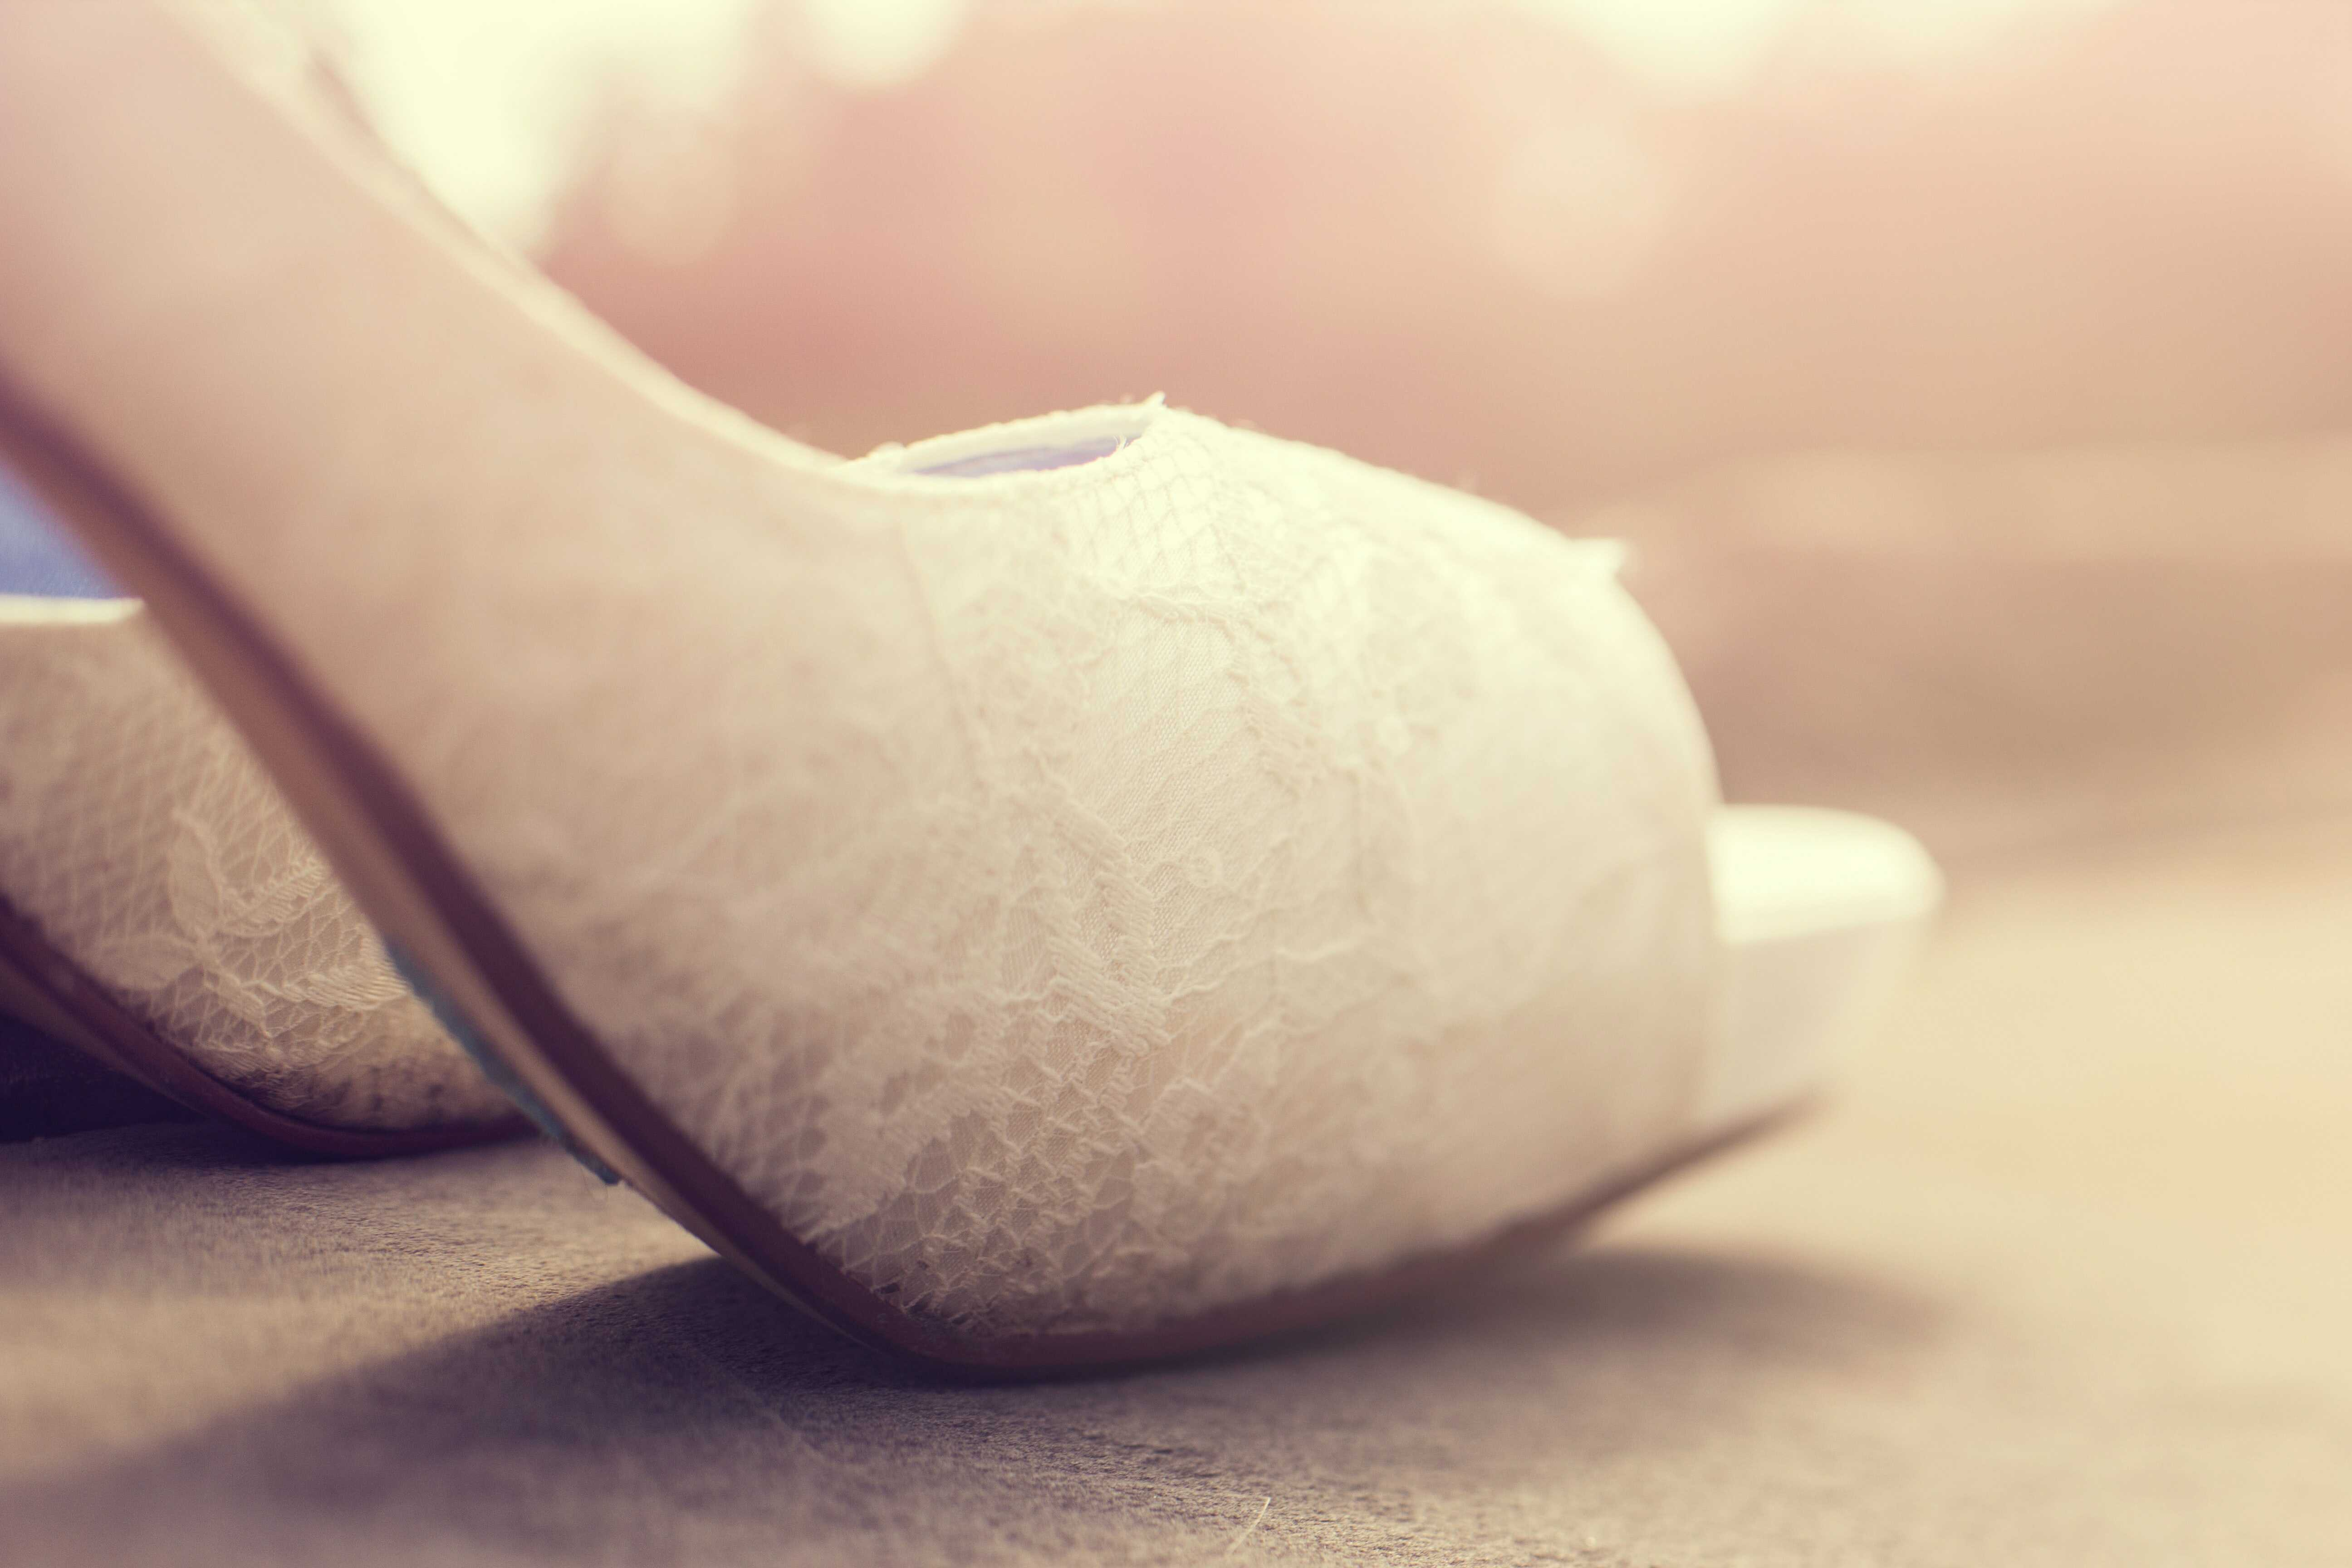 a white heels with platform